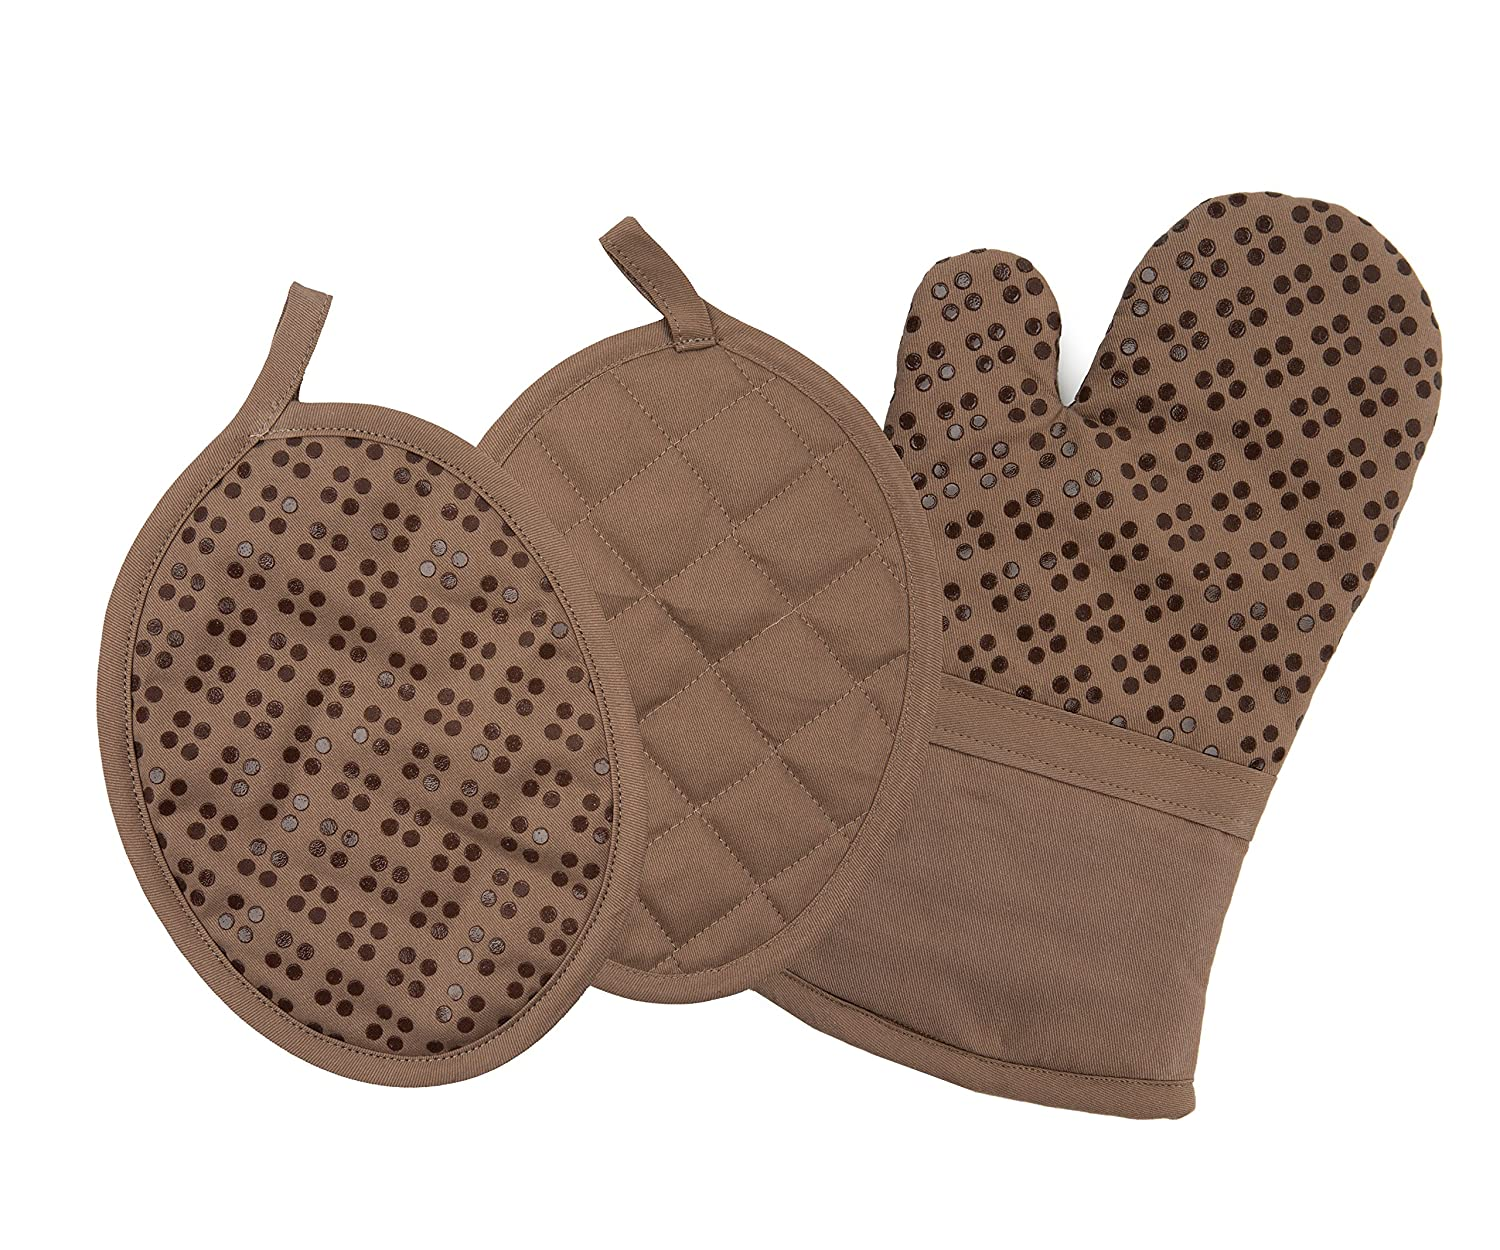 Sticky Toffee Printed Silicone Oven Mitt and Pot Holders, 100% Cotton, 3 Piece Set, Brown